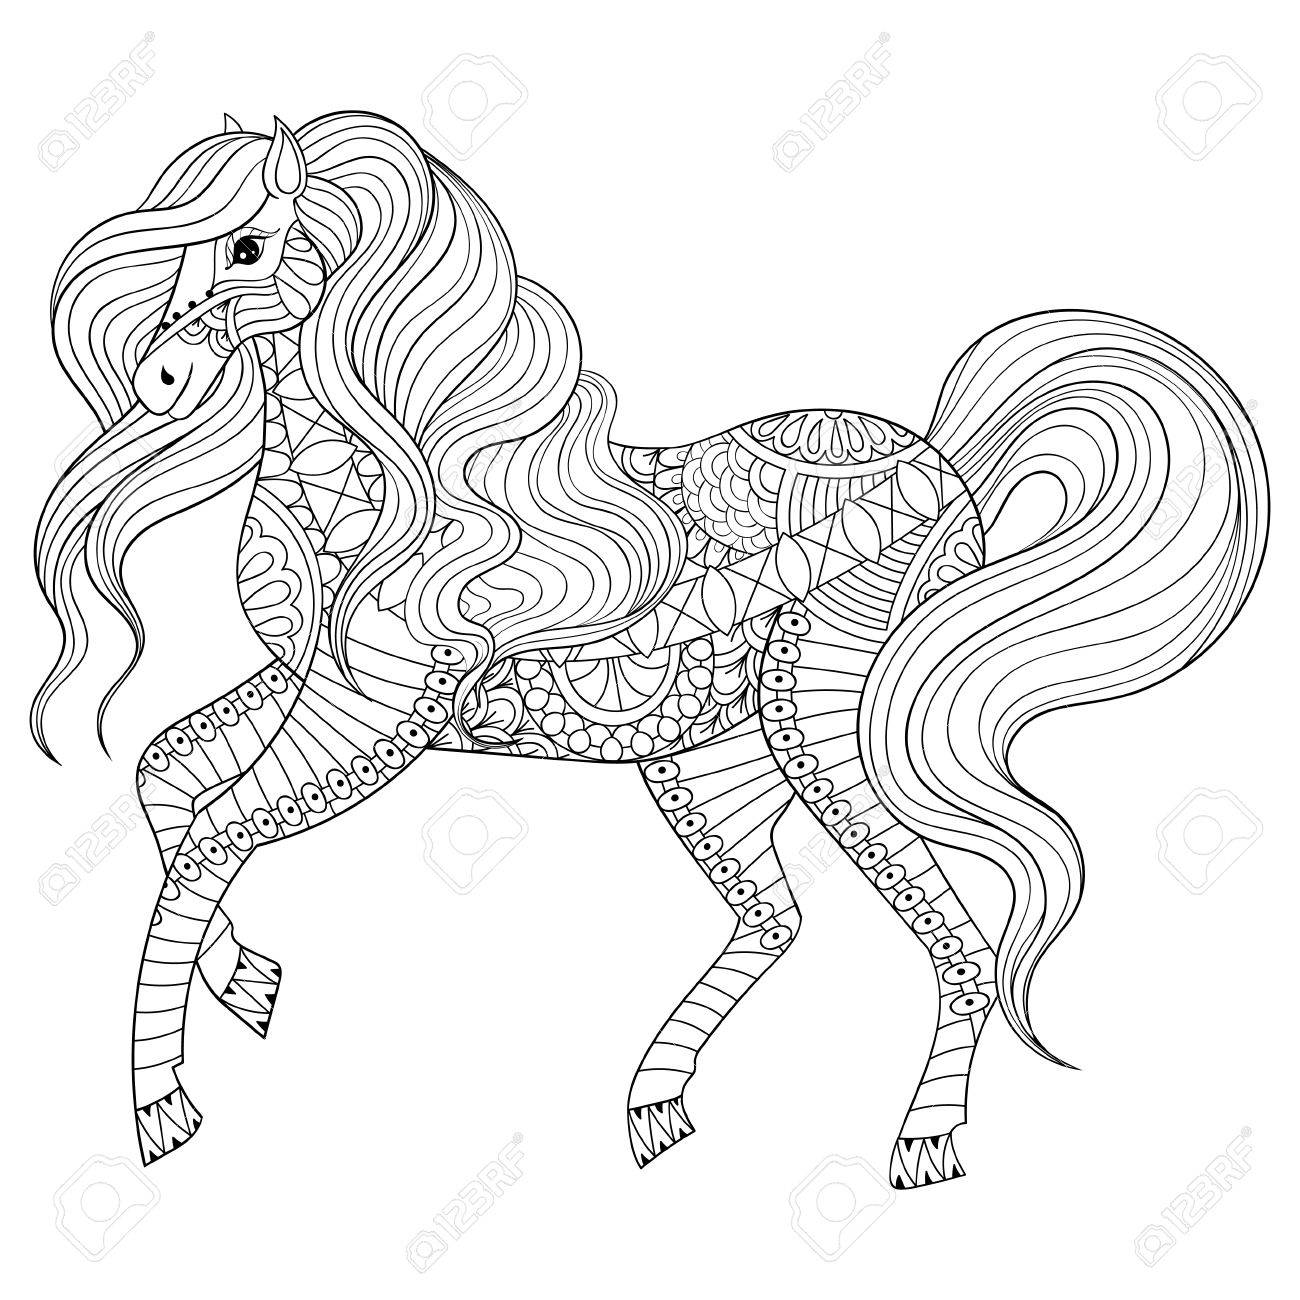 Coloriage Cheval Zen.Adulte Coloriage Anti Stress A Cheval Hand Drawn Animaux Zentangle